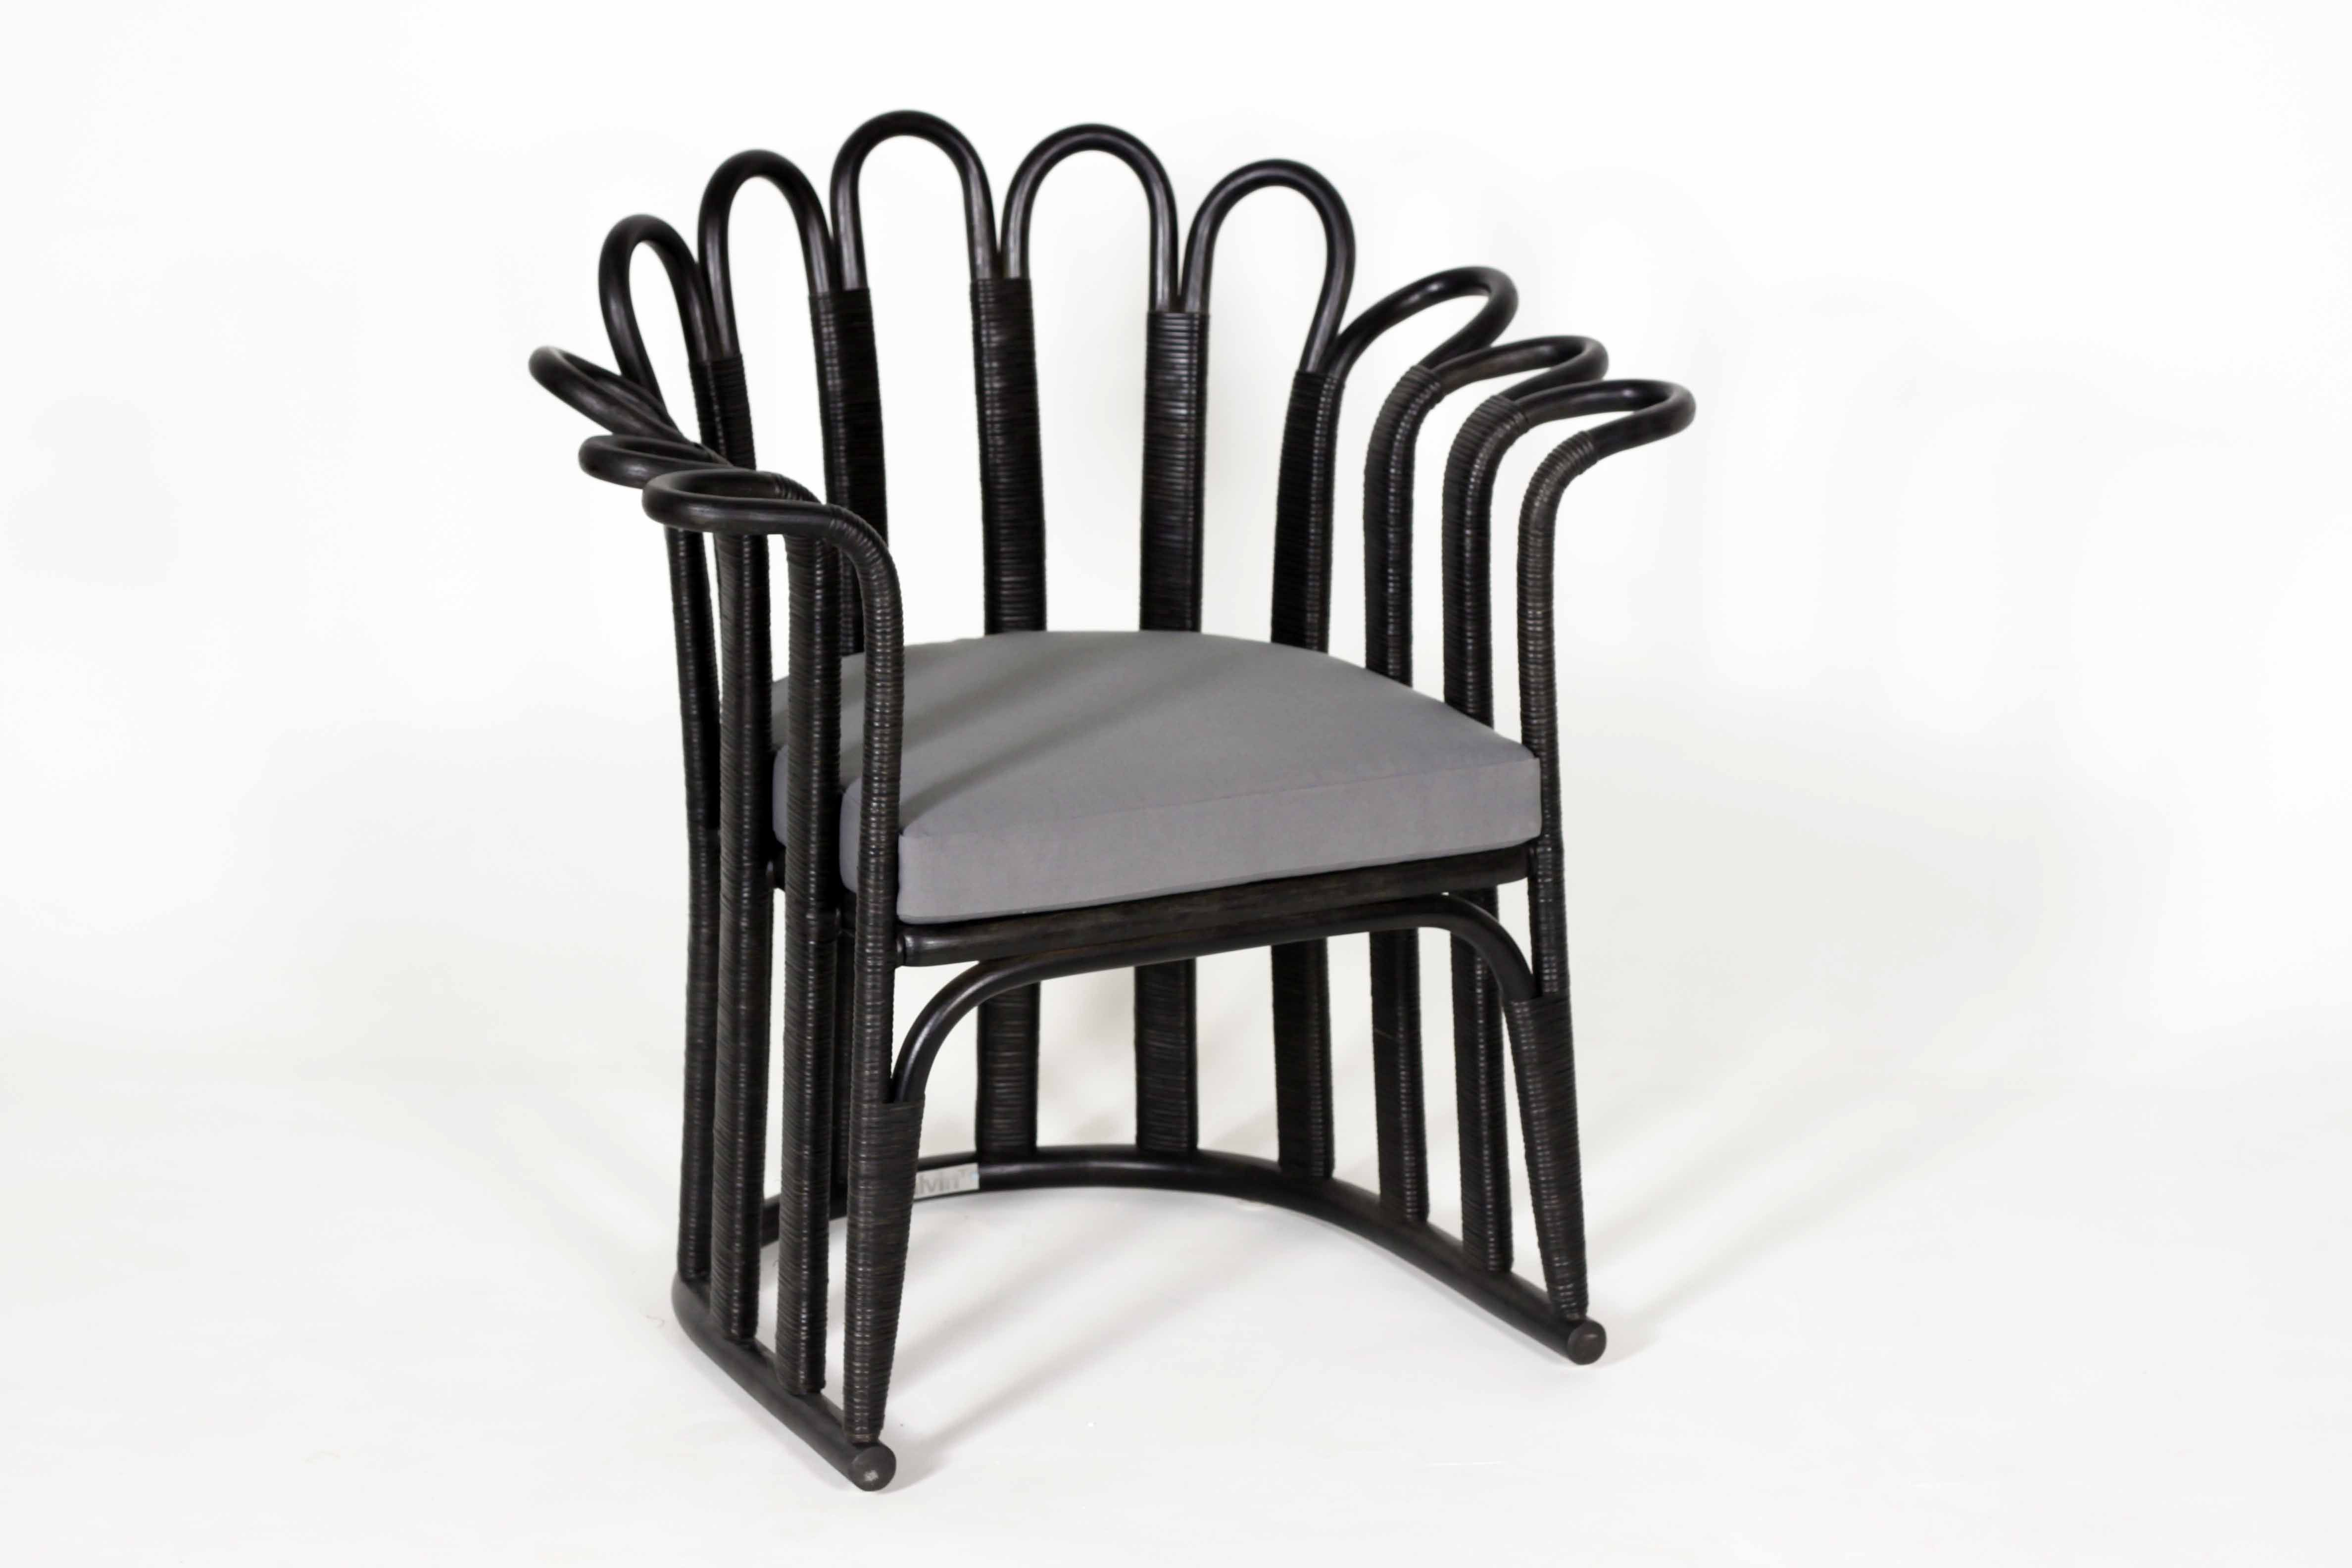 Mara Sedie ~ Malya chair by alvint indonesia www.alvin t.com product design